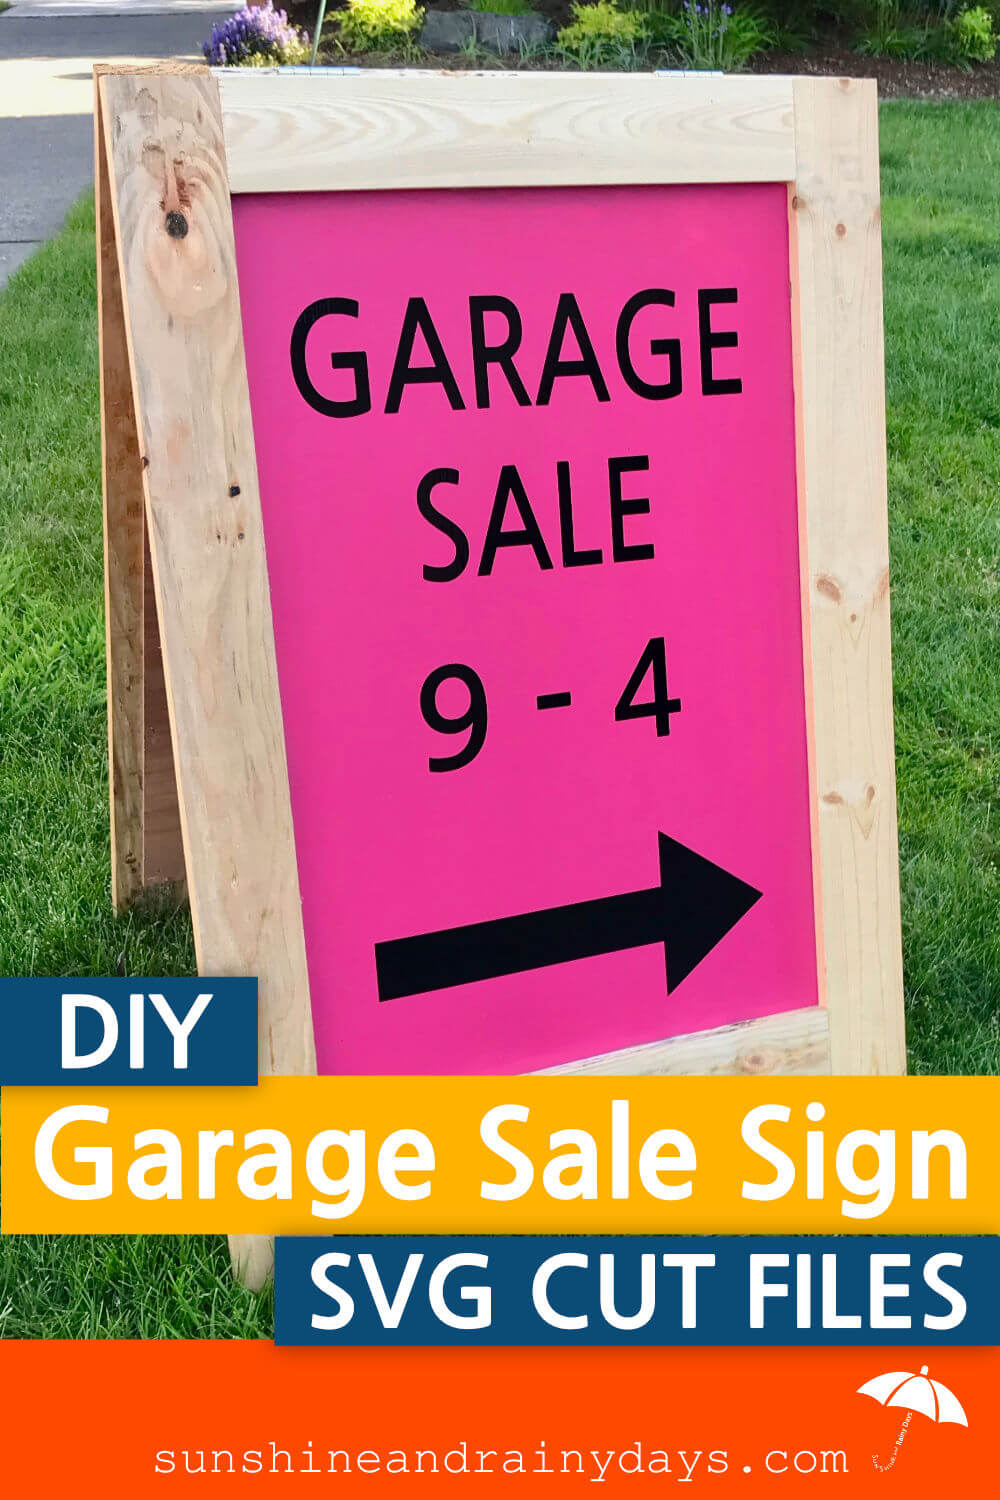 Garage Sale Sign (SVG Cut File)